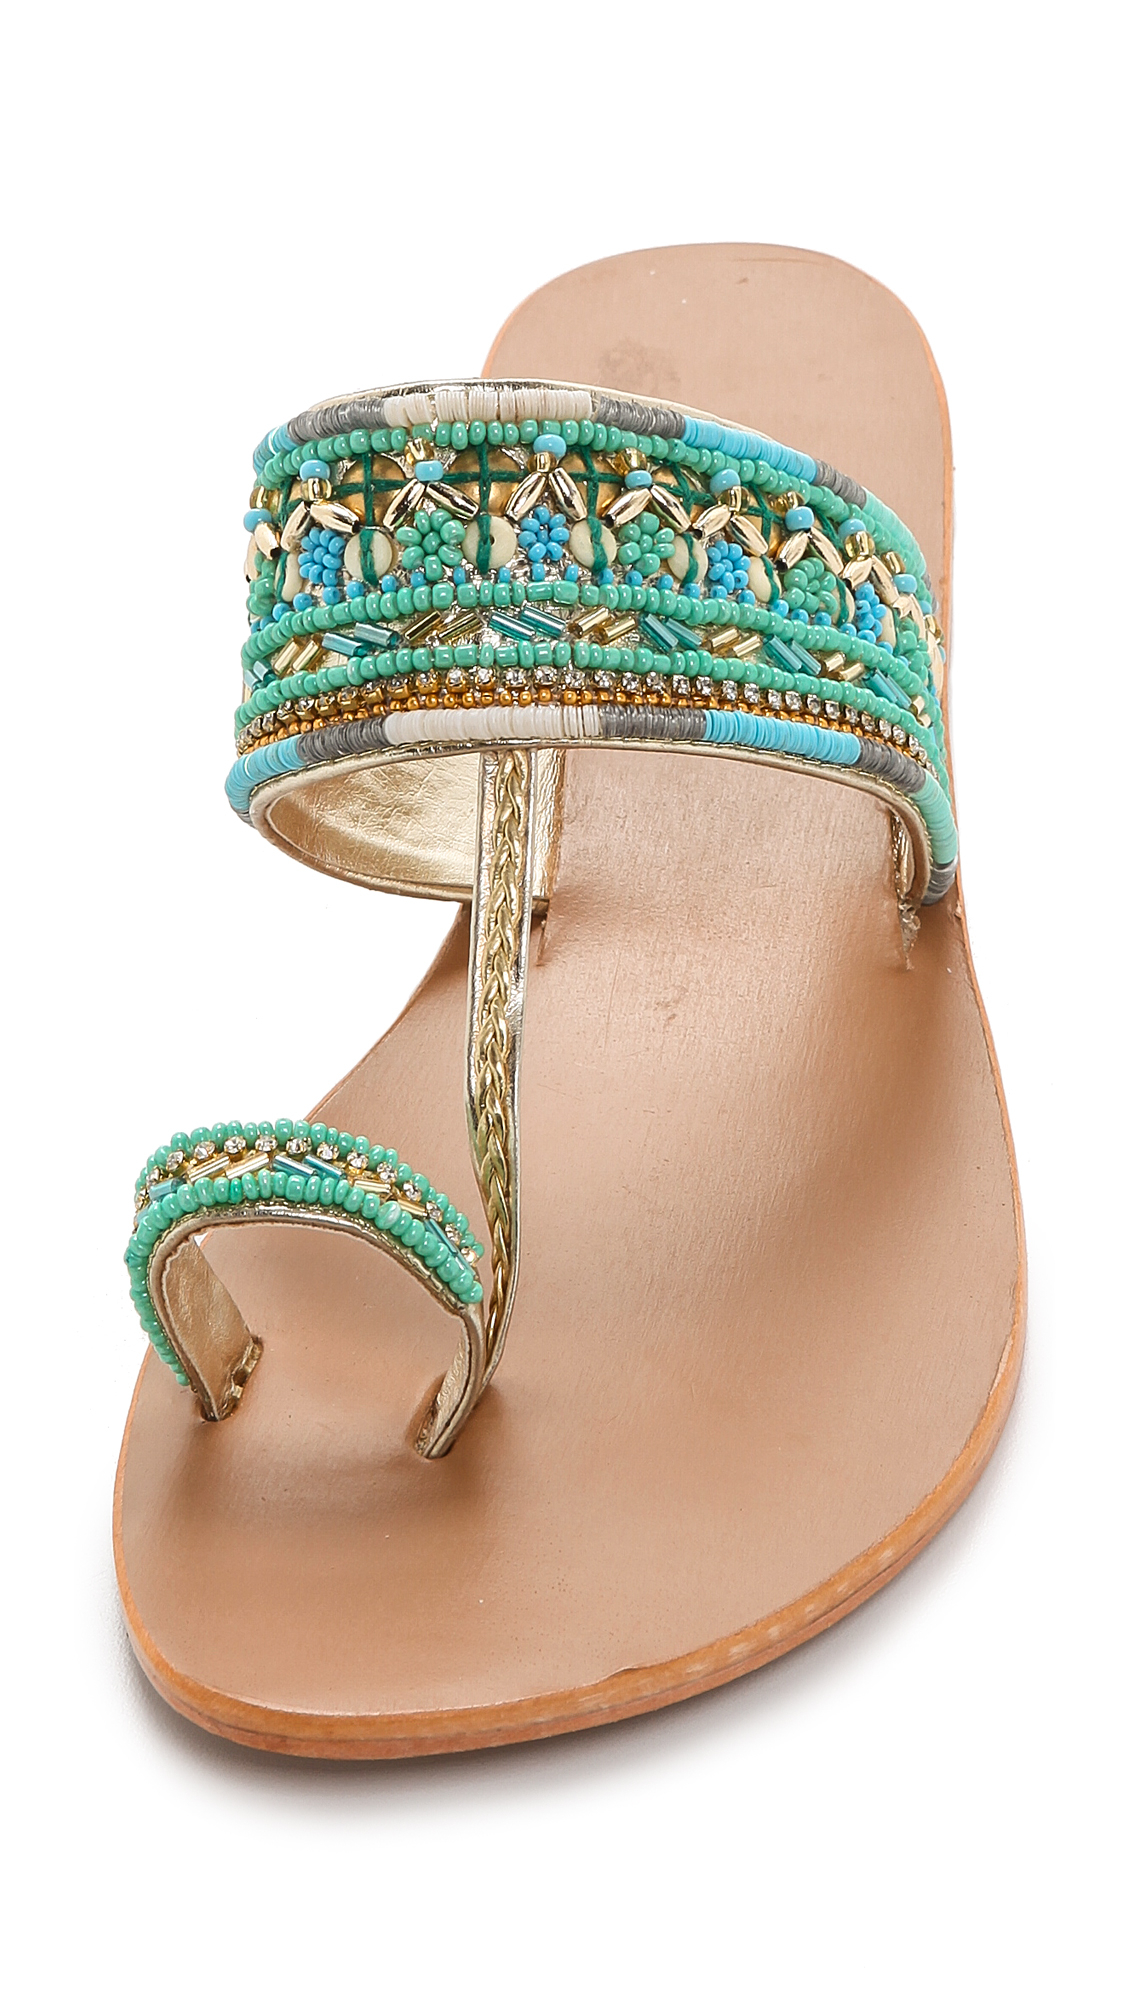 Star Mela Sabri Beaded Sandals - Turquoise In Blue - Lyst-1276